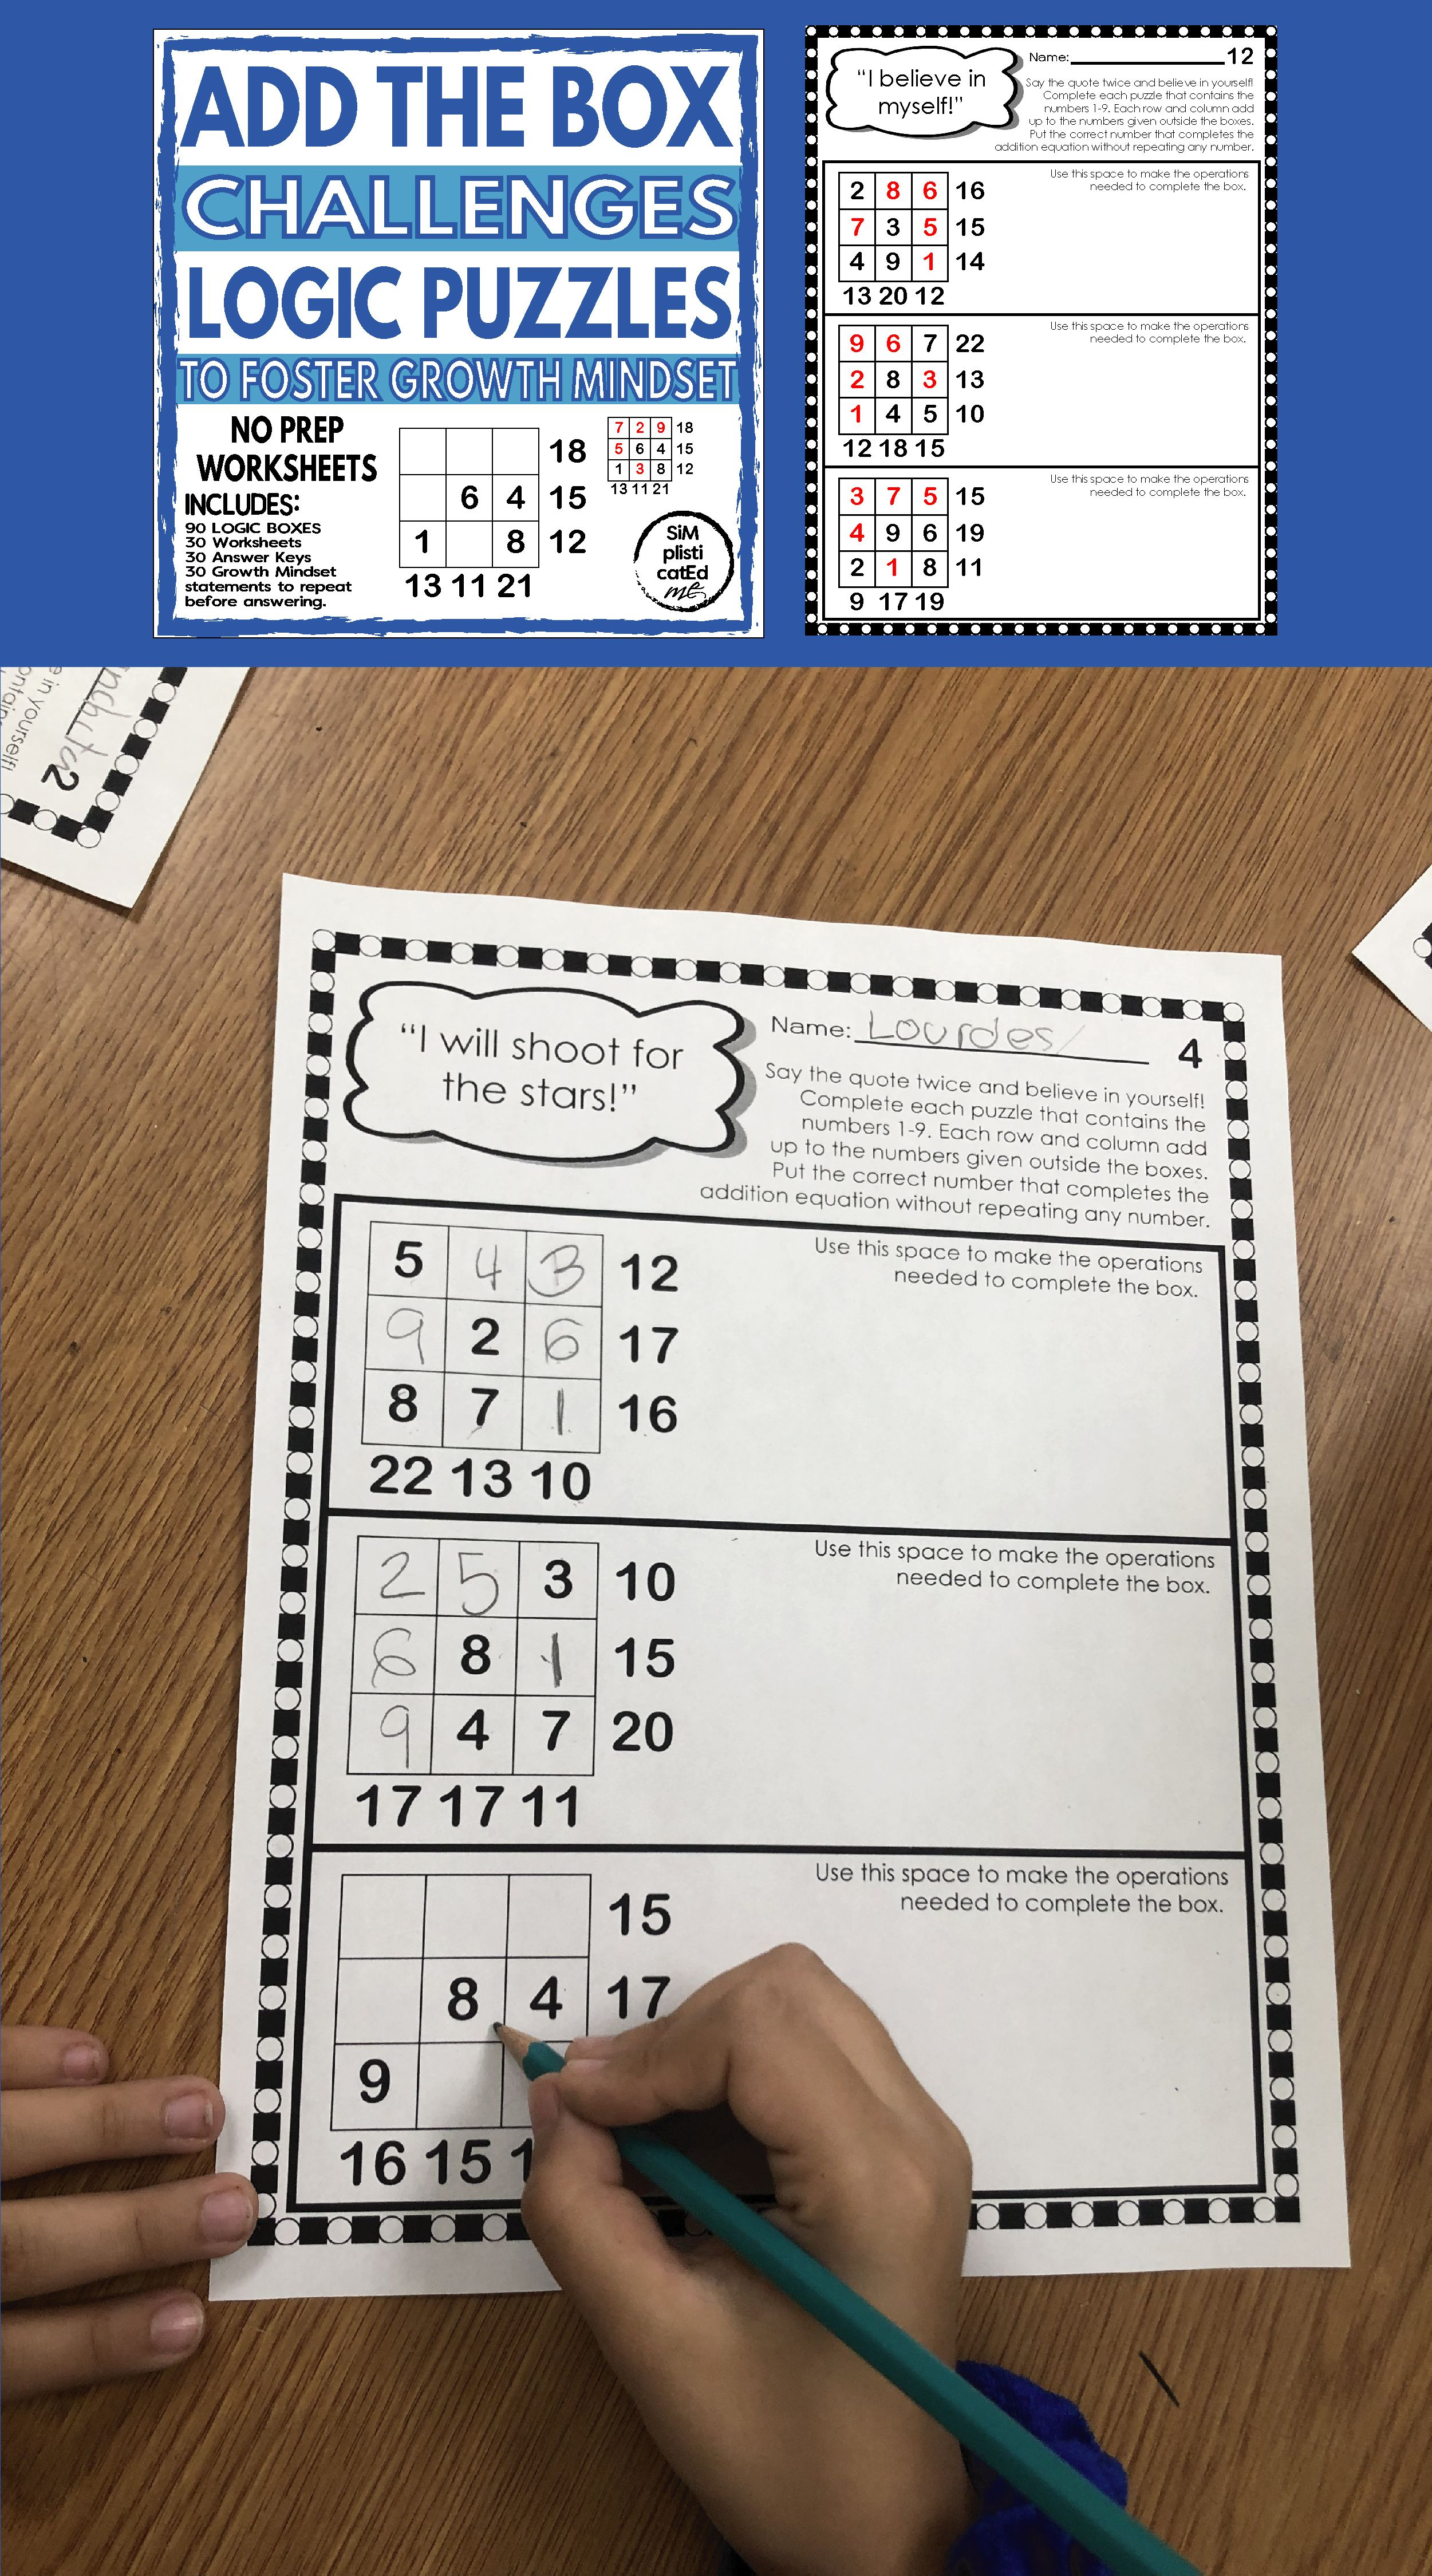 Math Logic Addition Puzzle Box Challenges To Foster Growth